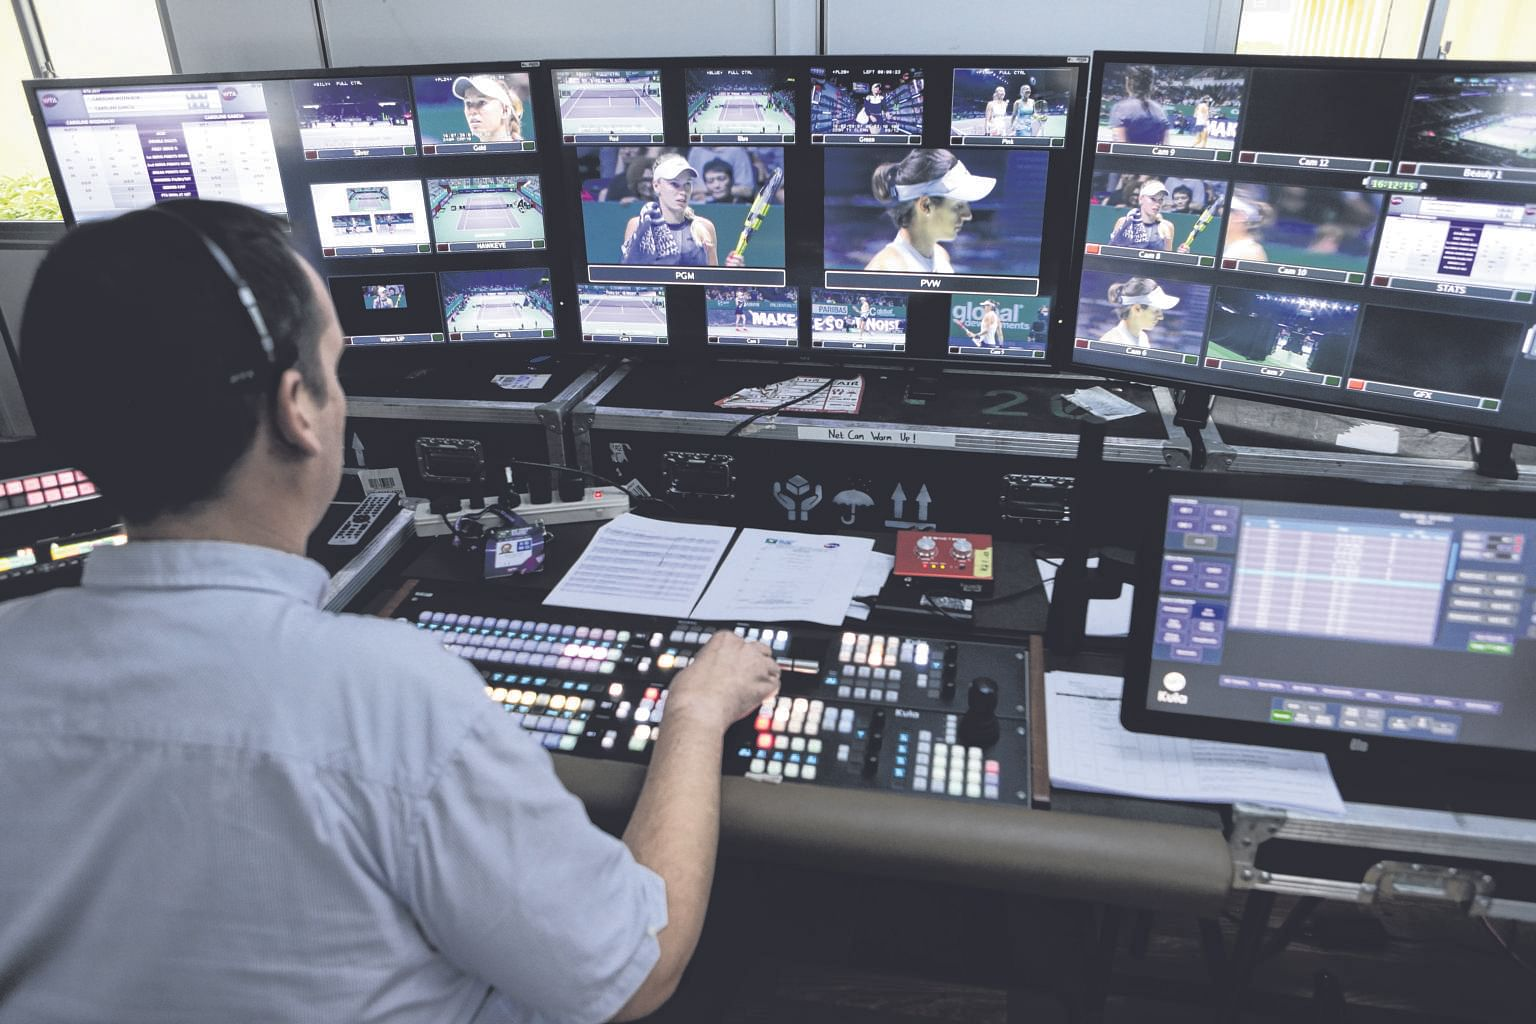 Nic Mills directing the broadcast of the match between Caroline Garcia and Caroline Wozniacki yesterday. The images are beamed to 38 international broadcasters worldwide by a team of over 50 people here.